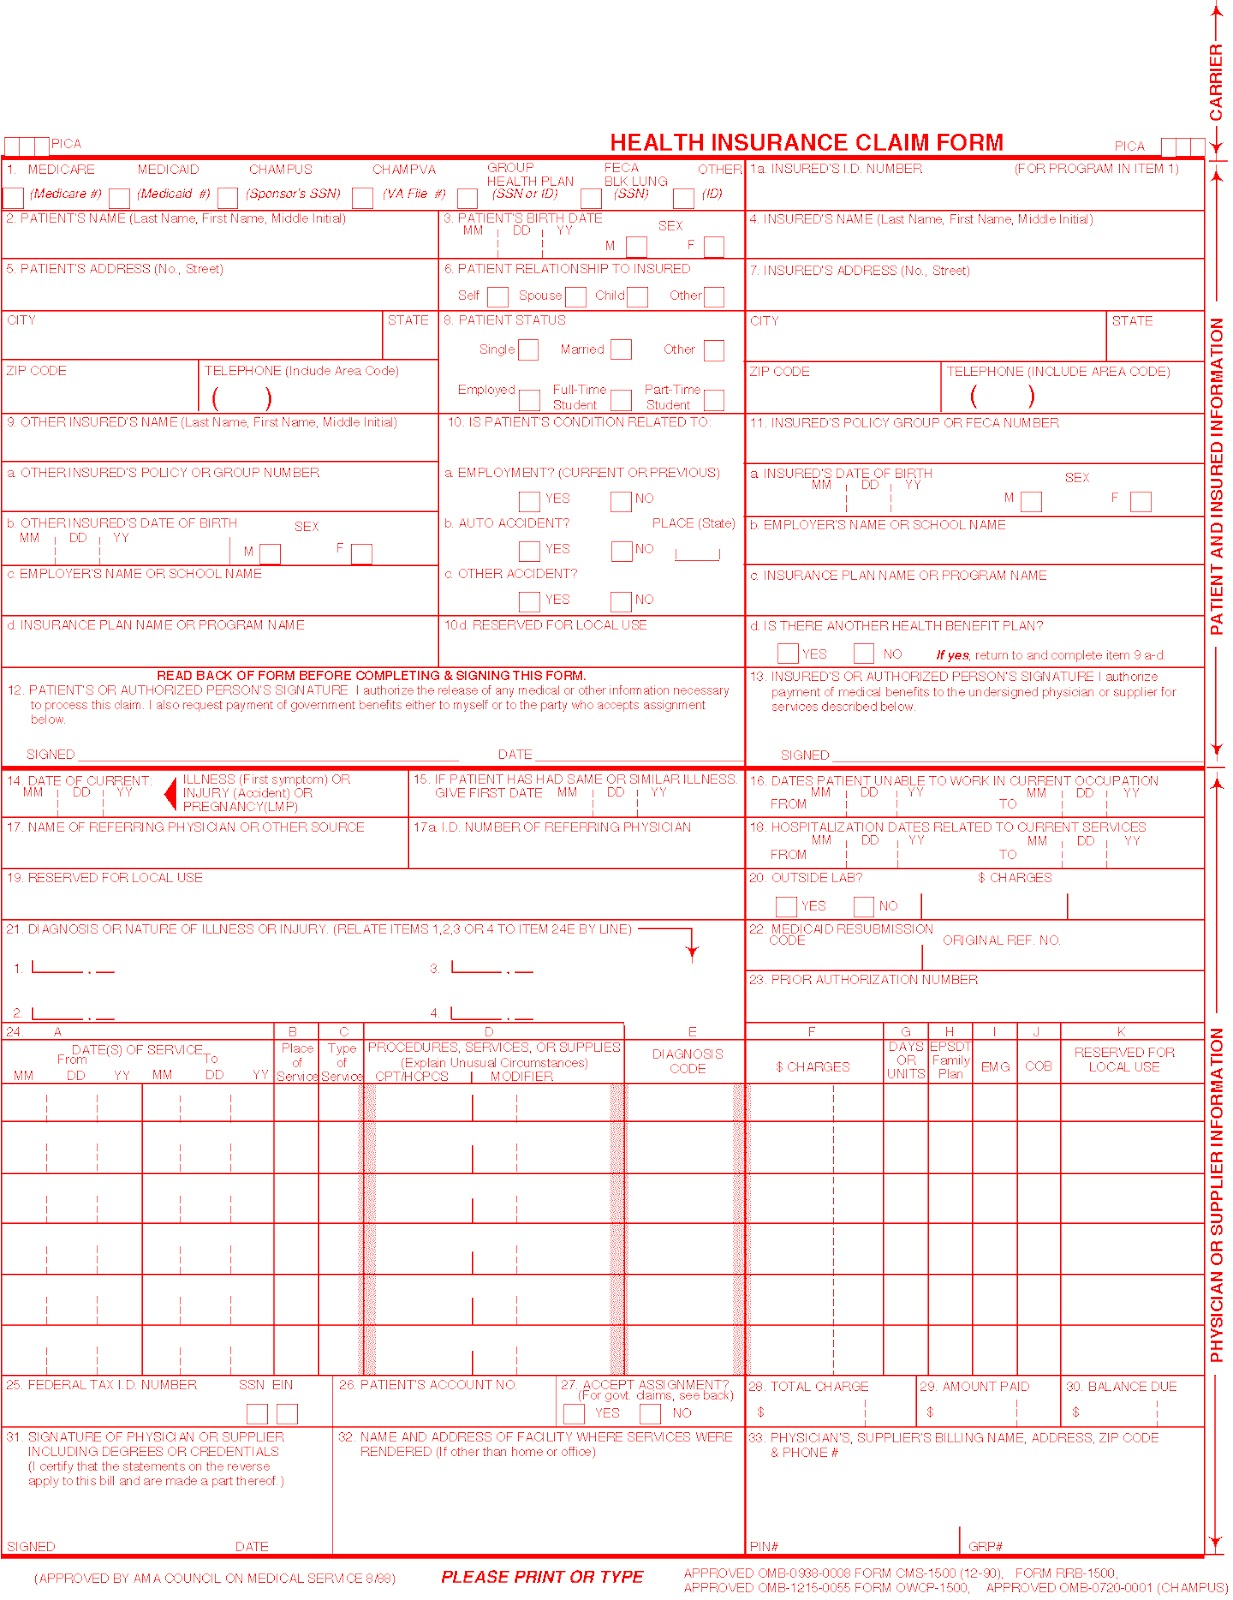 INSURANCE CLAIM FORMS, aka the HCFA-1500